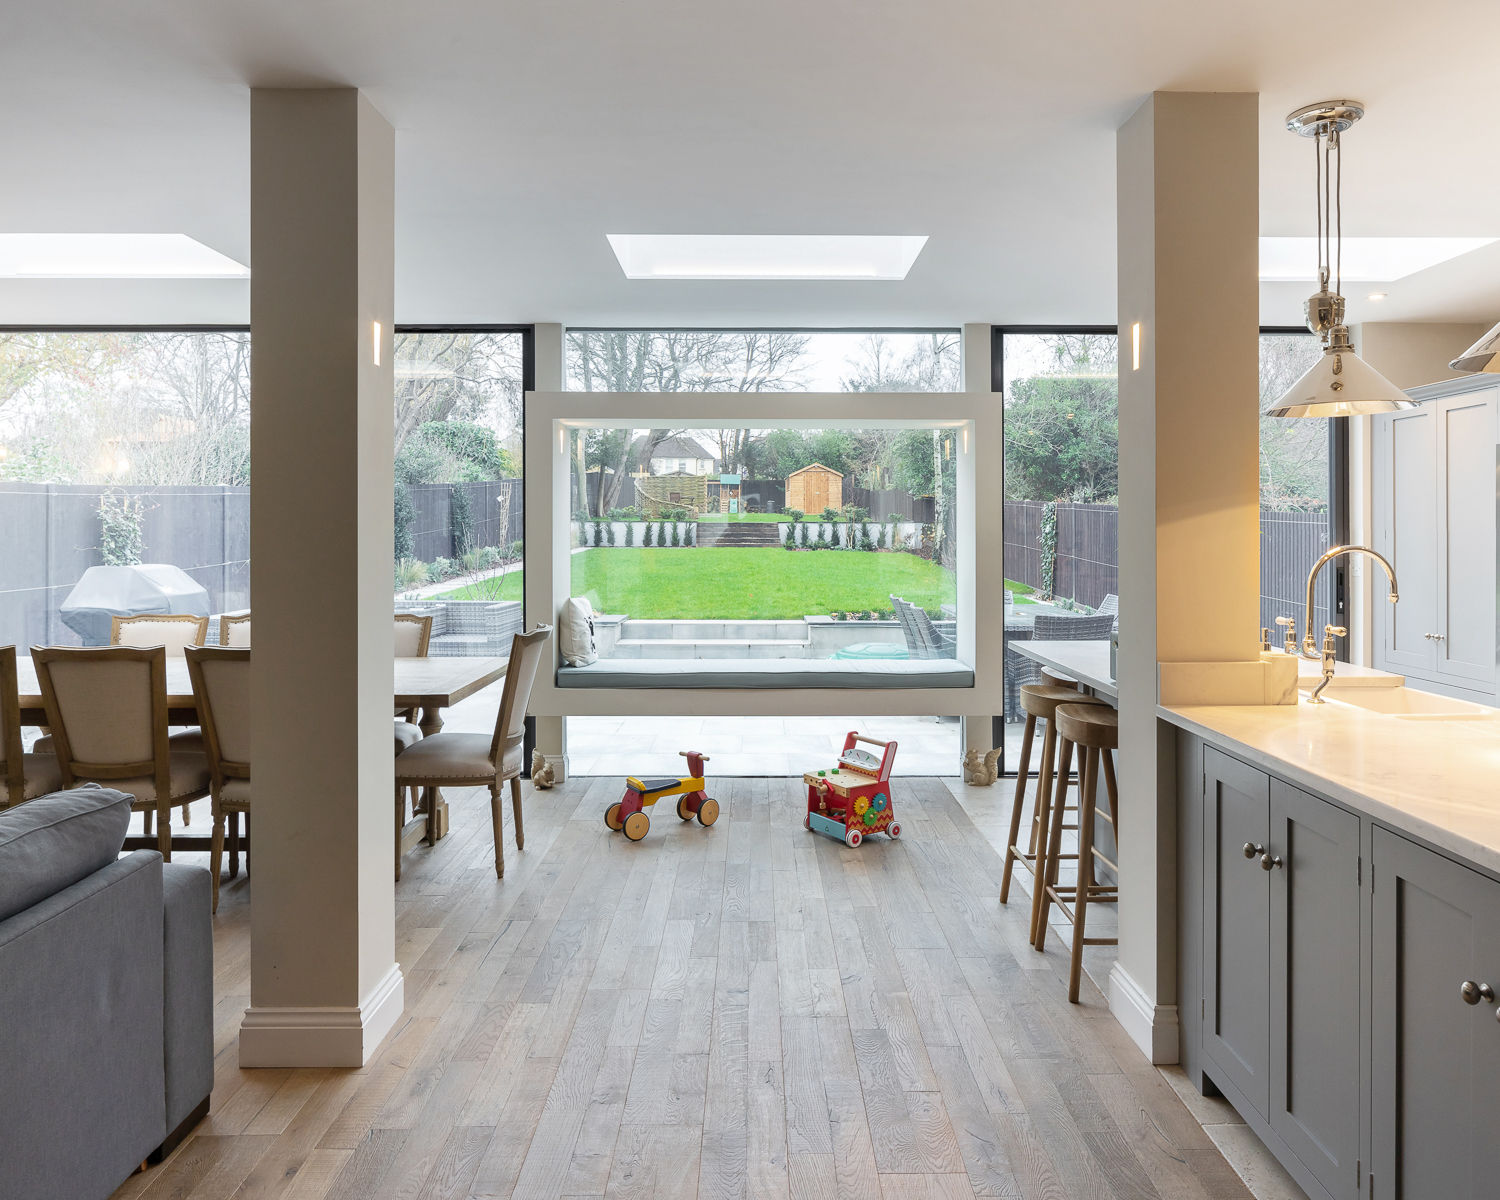 St Albans House kitchen and window seat